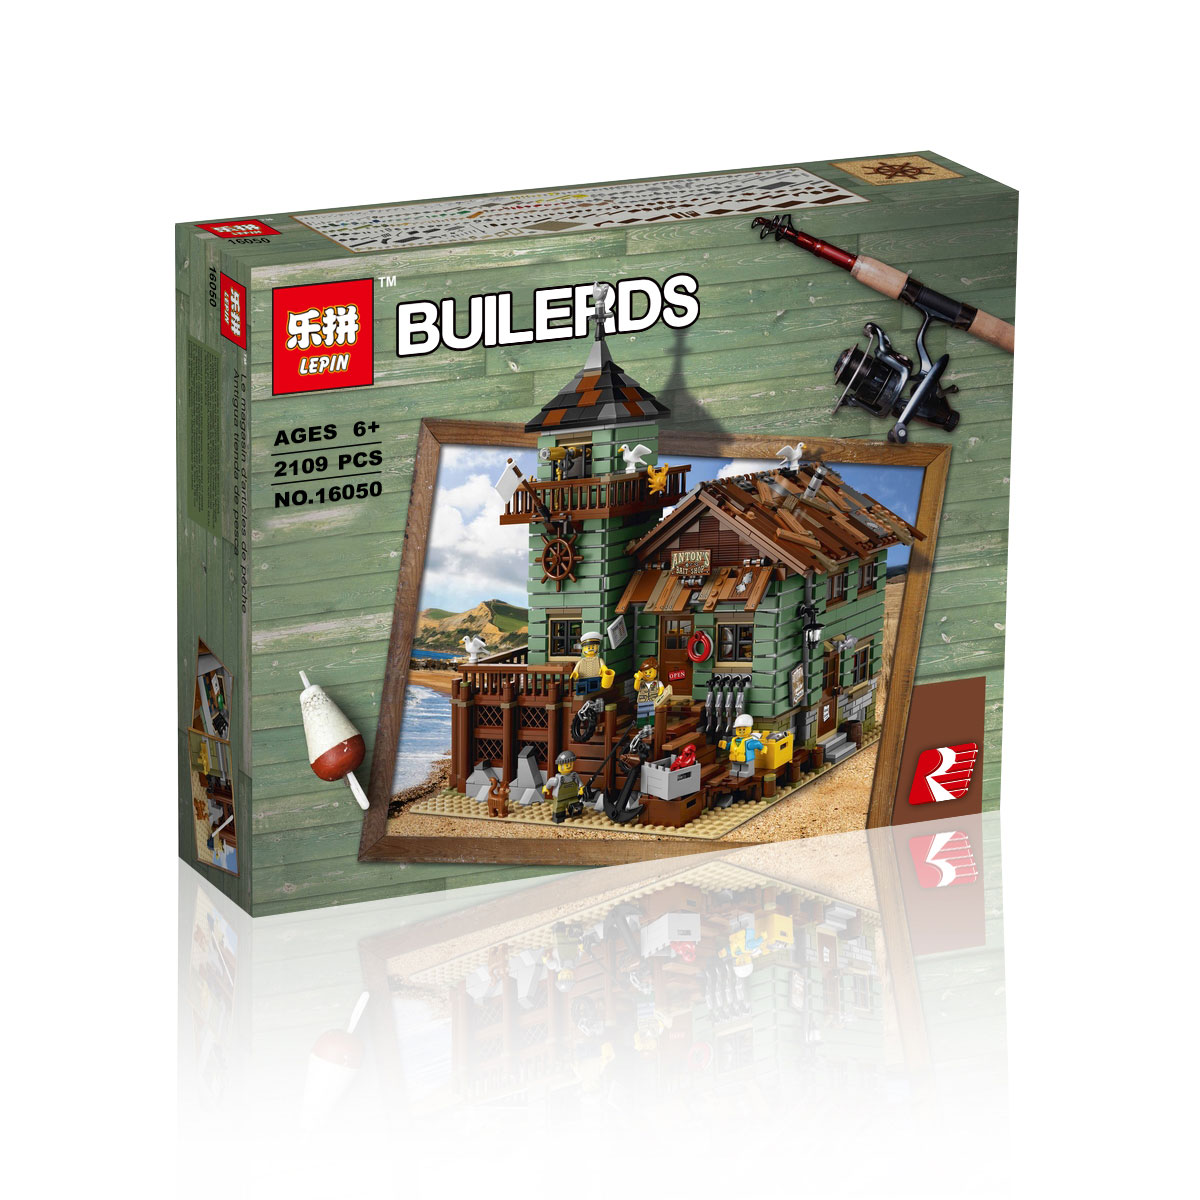 2109+ PCS Building Bricks, LP 16050 Building Blocks Ideas 21310 Old Fishing Store.